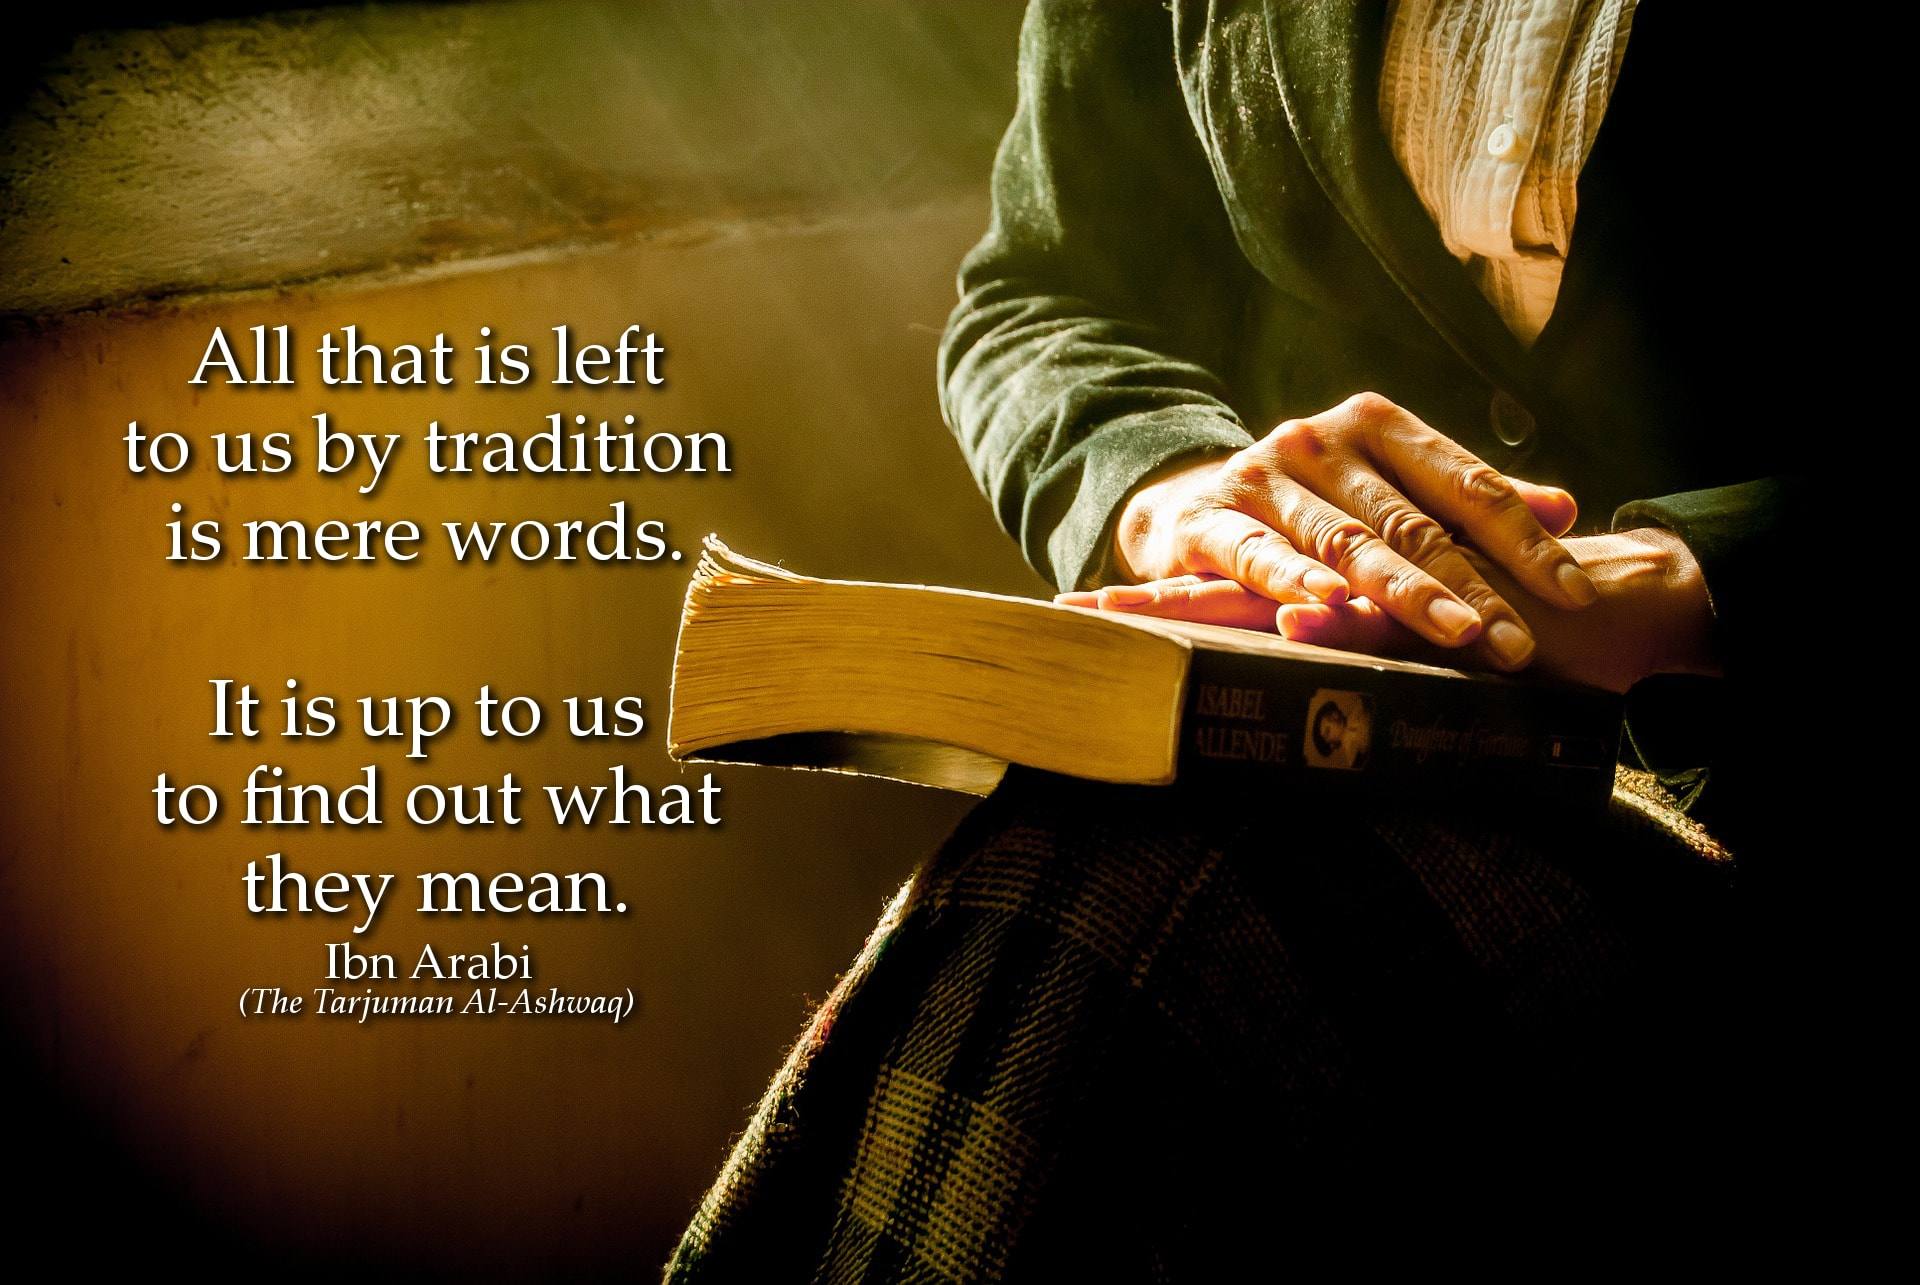 Ibn Arabi Quote: All that is left to us by tradition is mere words. ...